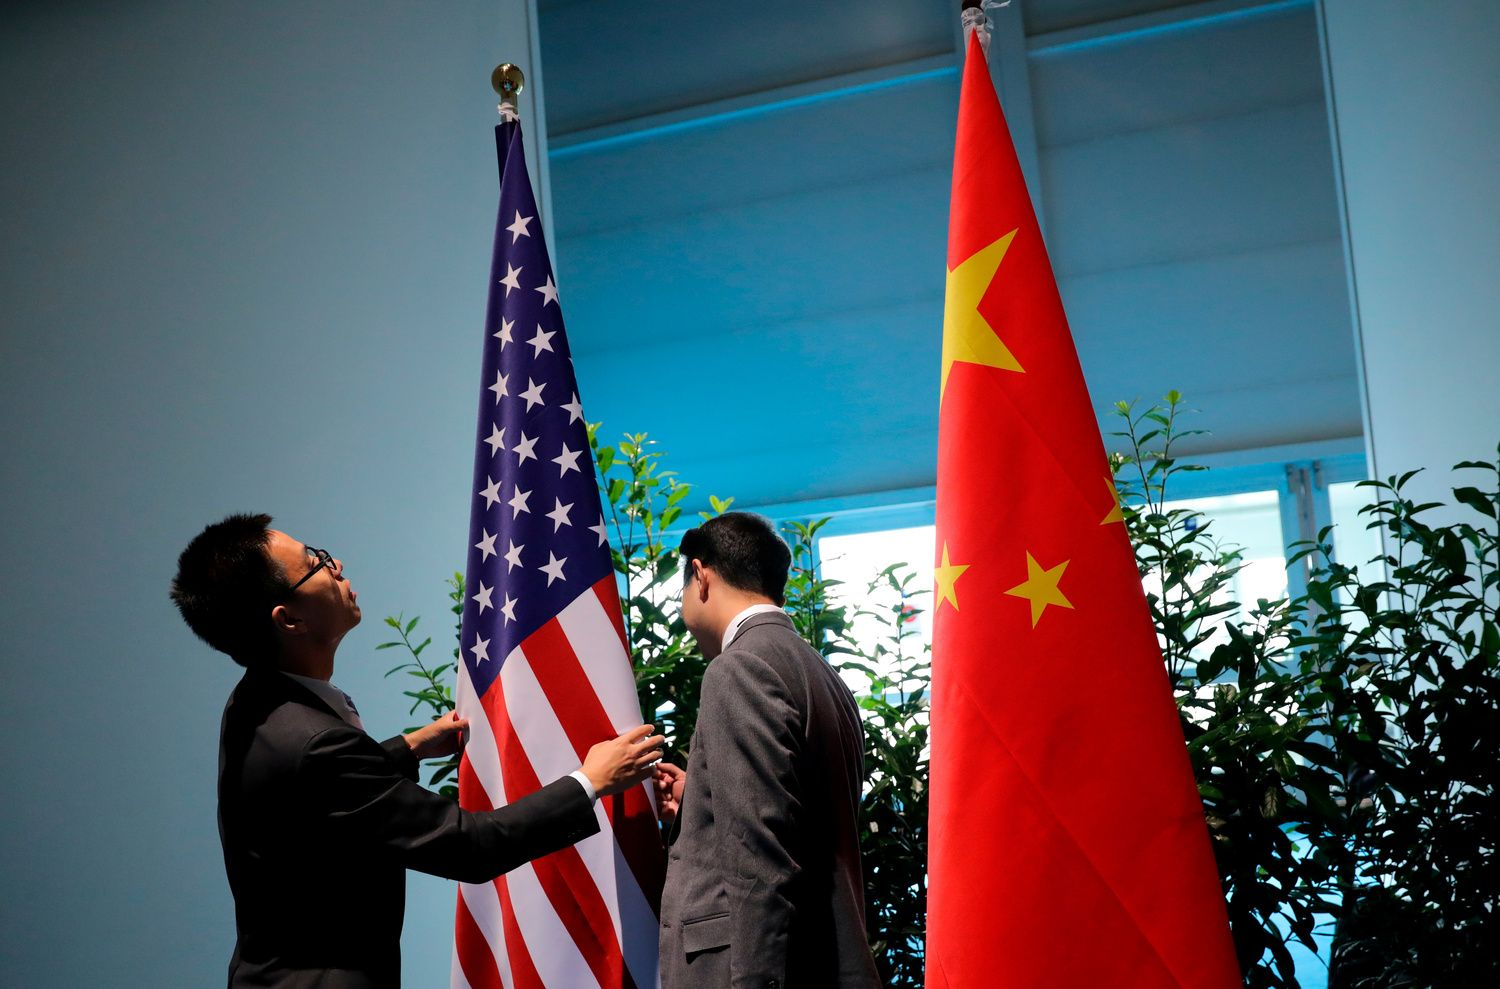 U.S., China Sidestep Discord to Focus on More Balanced Trade